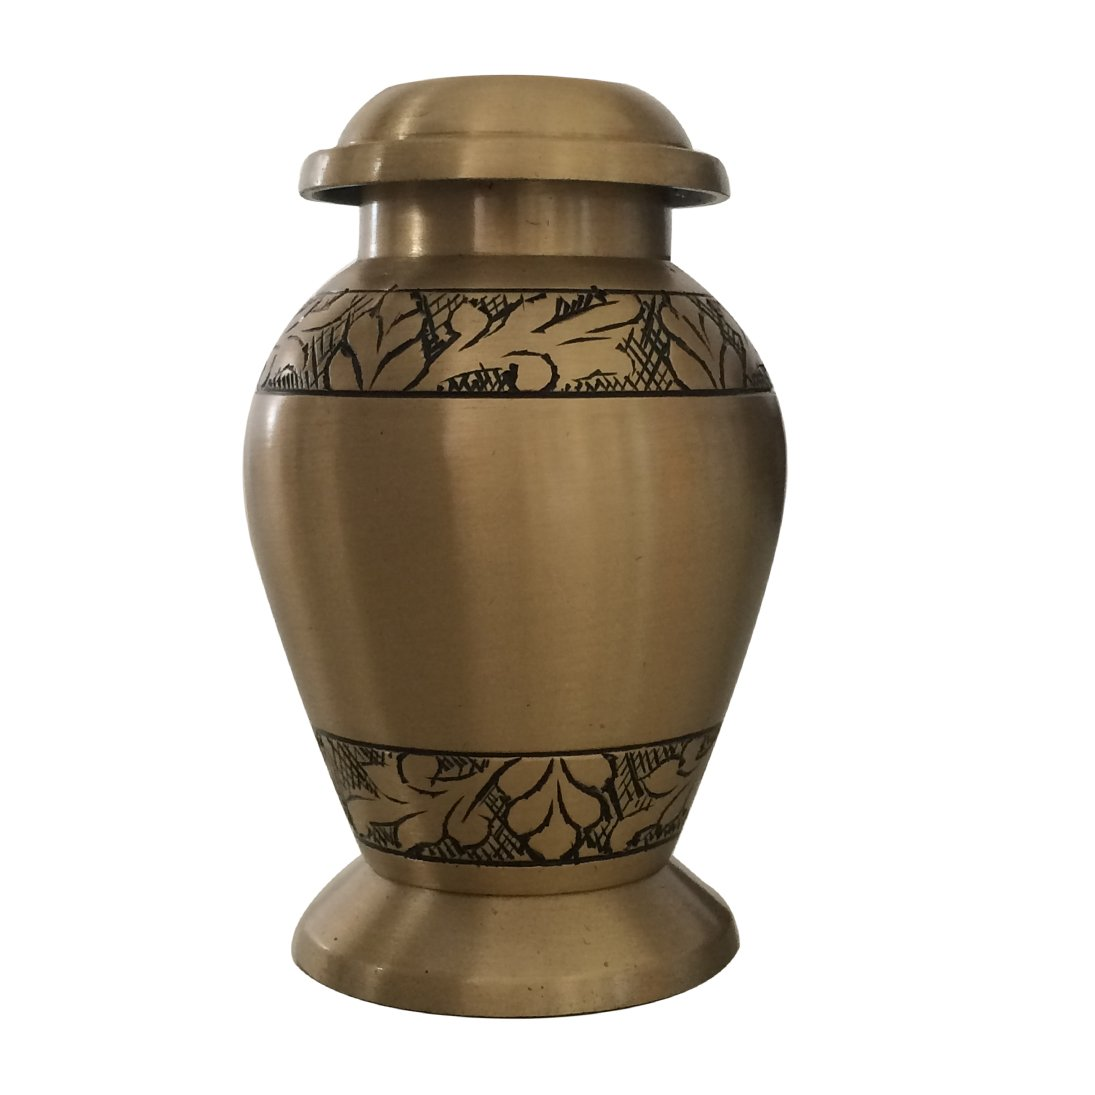 Engraved Brushed Brass Keepsake Cremation Urn